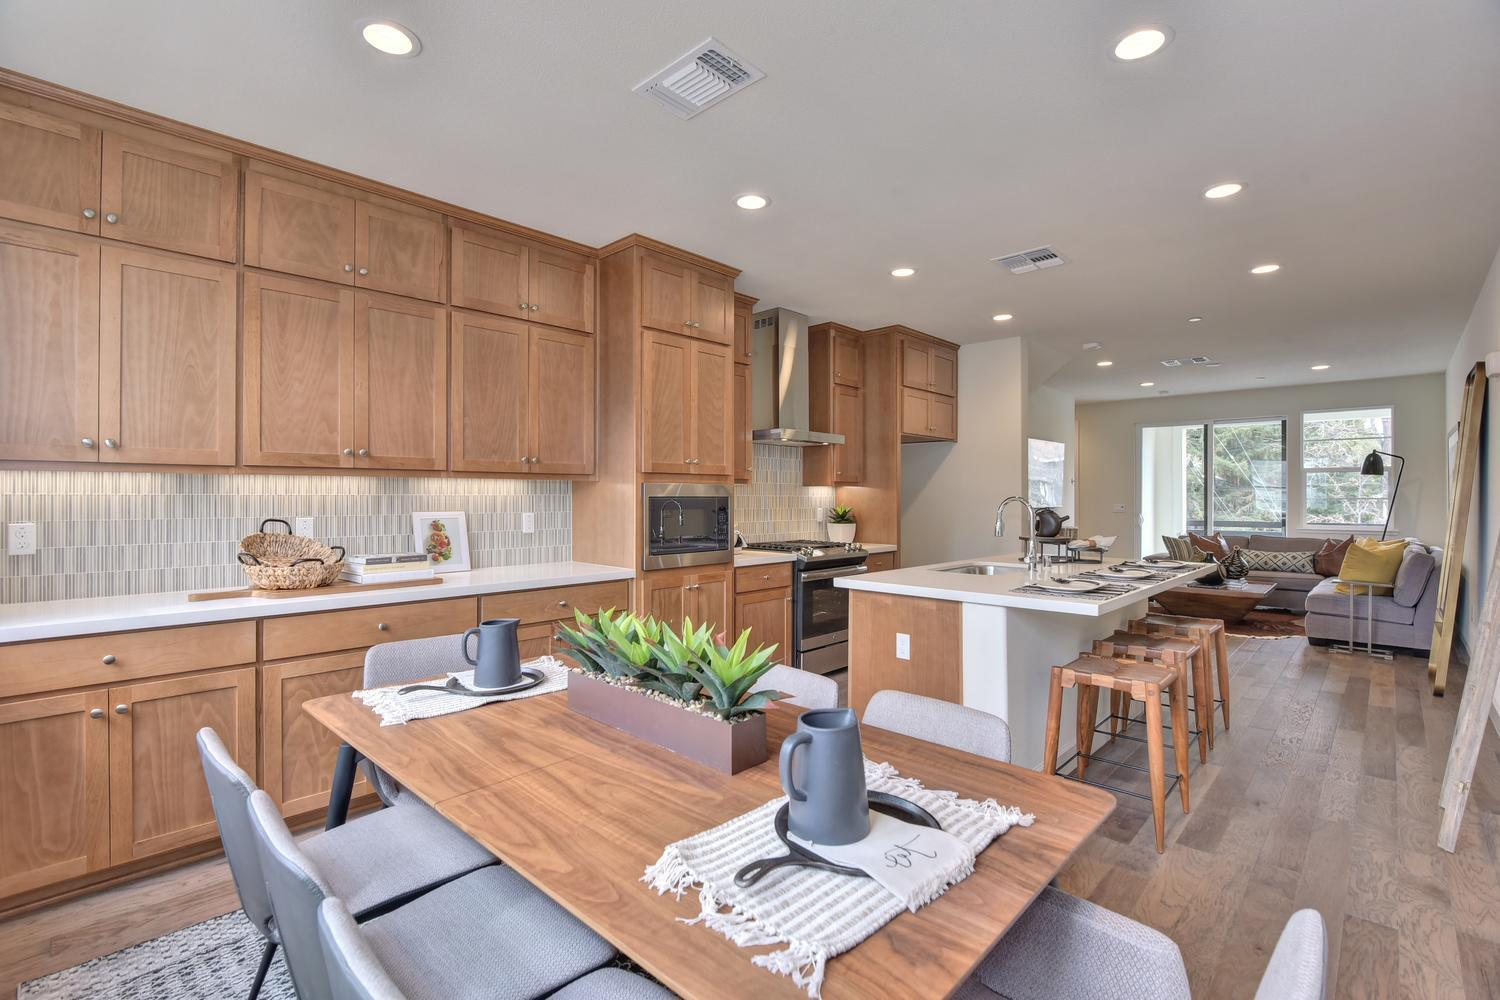 Kitchen featured in the Residence 1 By Nuvera Homes in Oakland-Alameda, CA